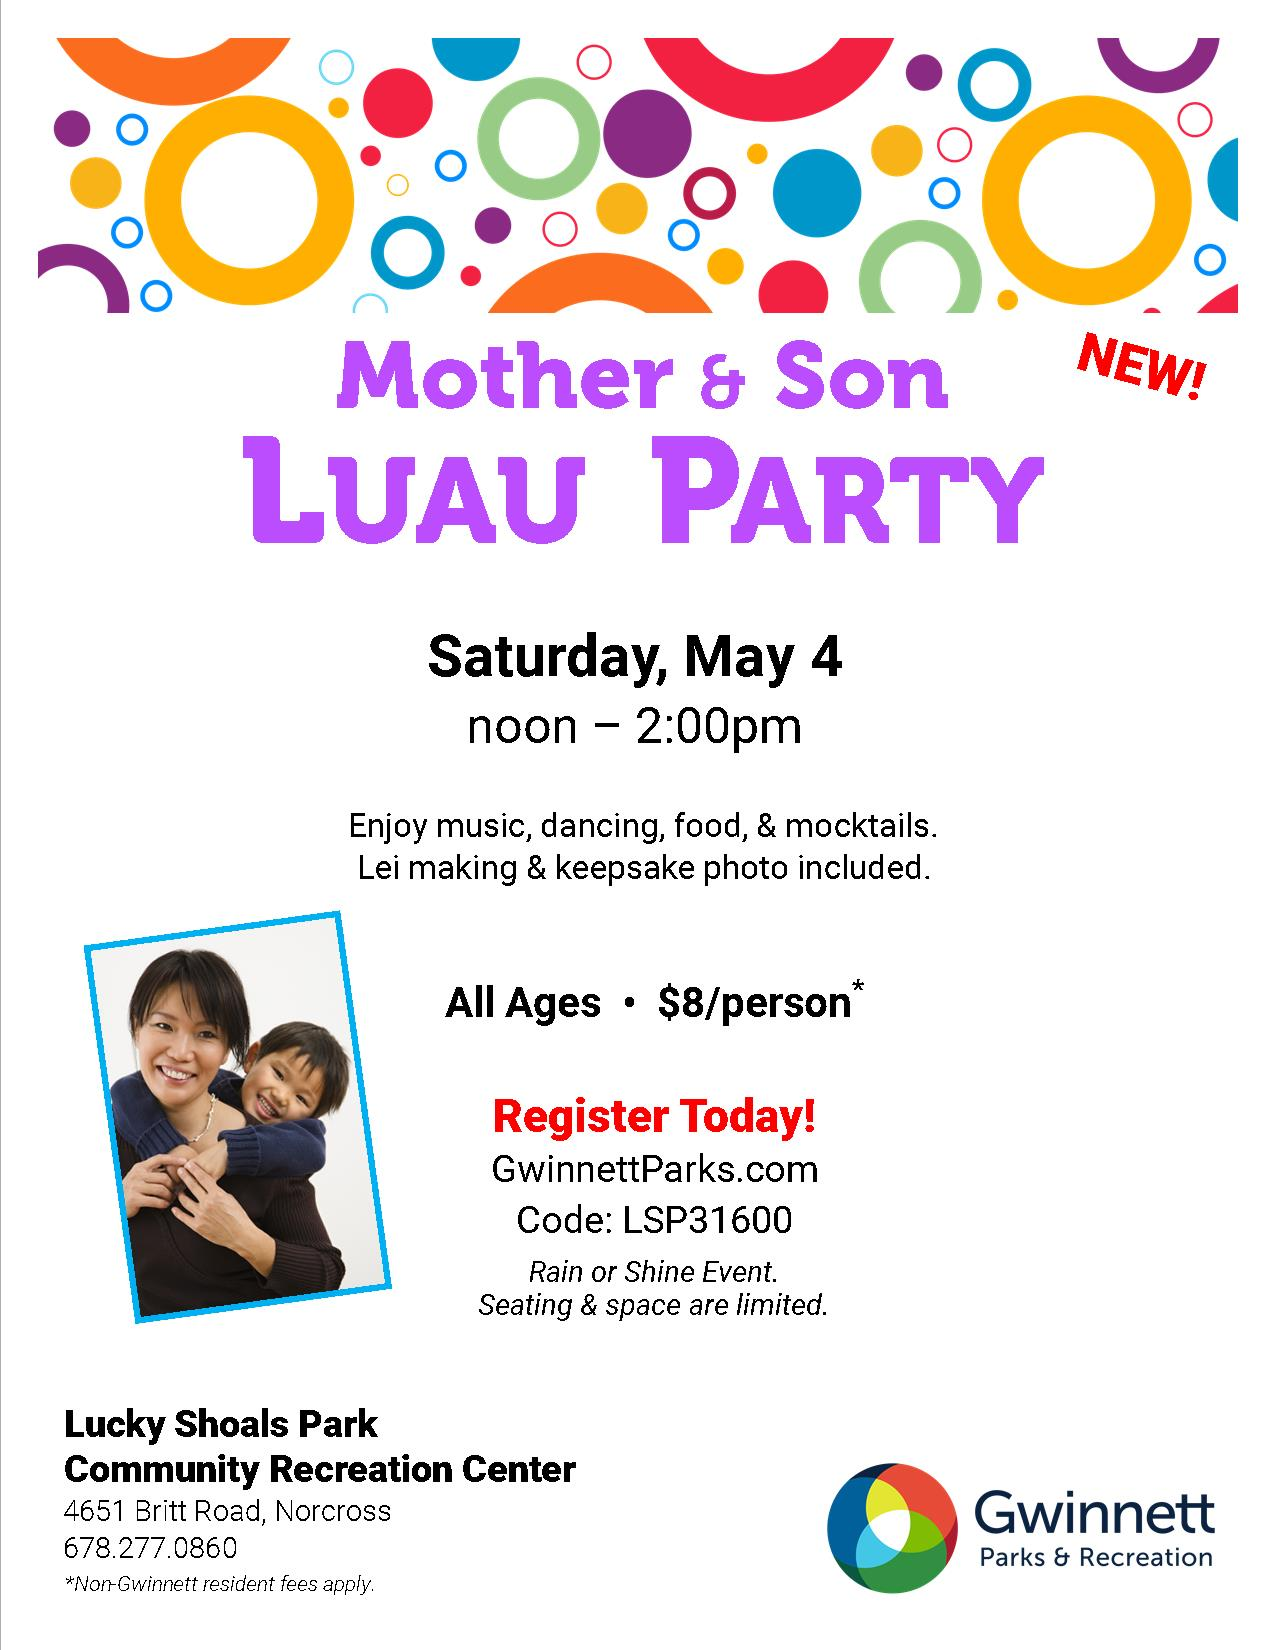 Mother & Son Luau Party